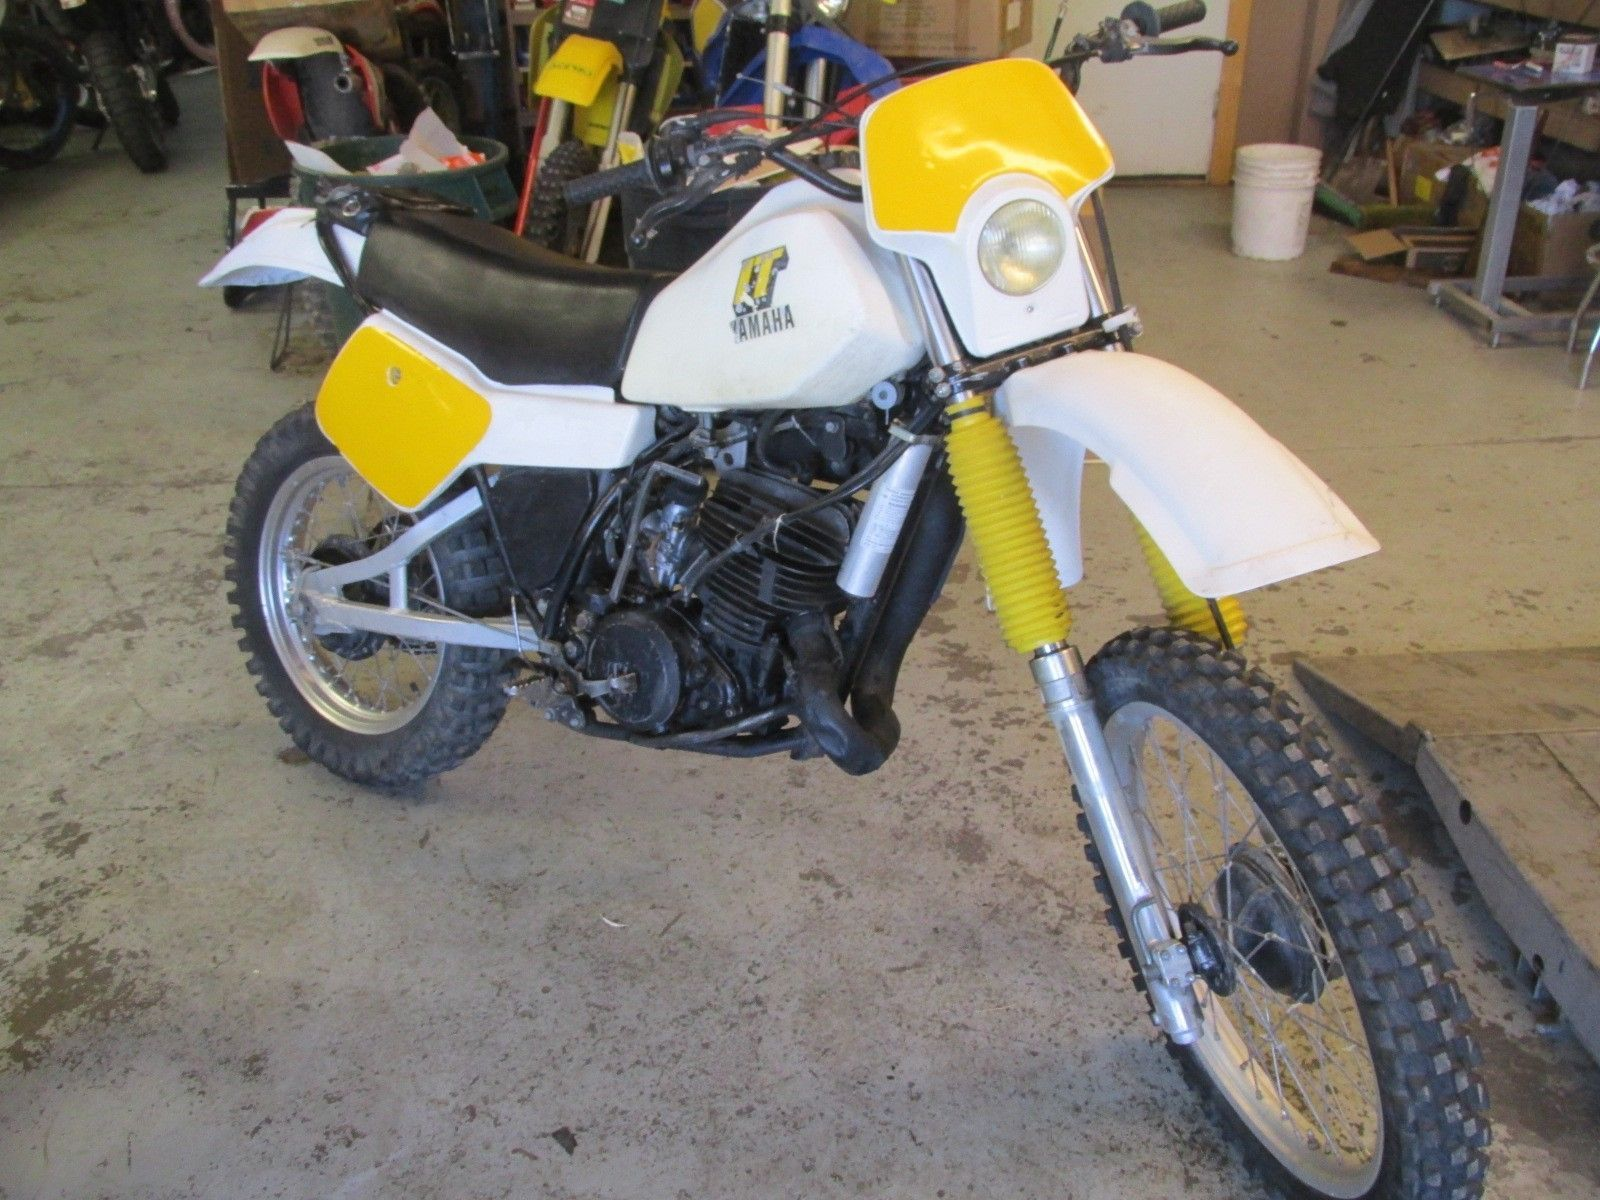 1981 yamaha it465 enduro bike ahmra open class ebay. Black Bedroom Furniture Sets. Home Design Ideas